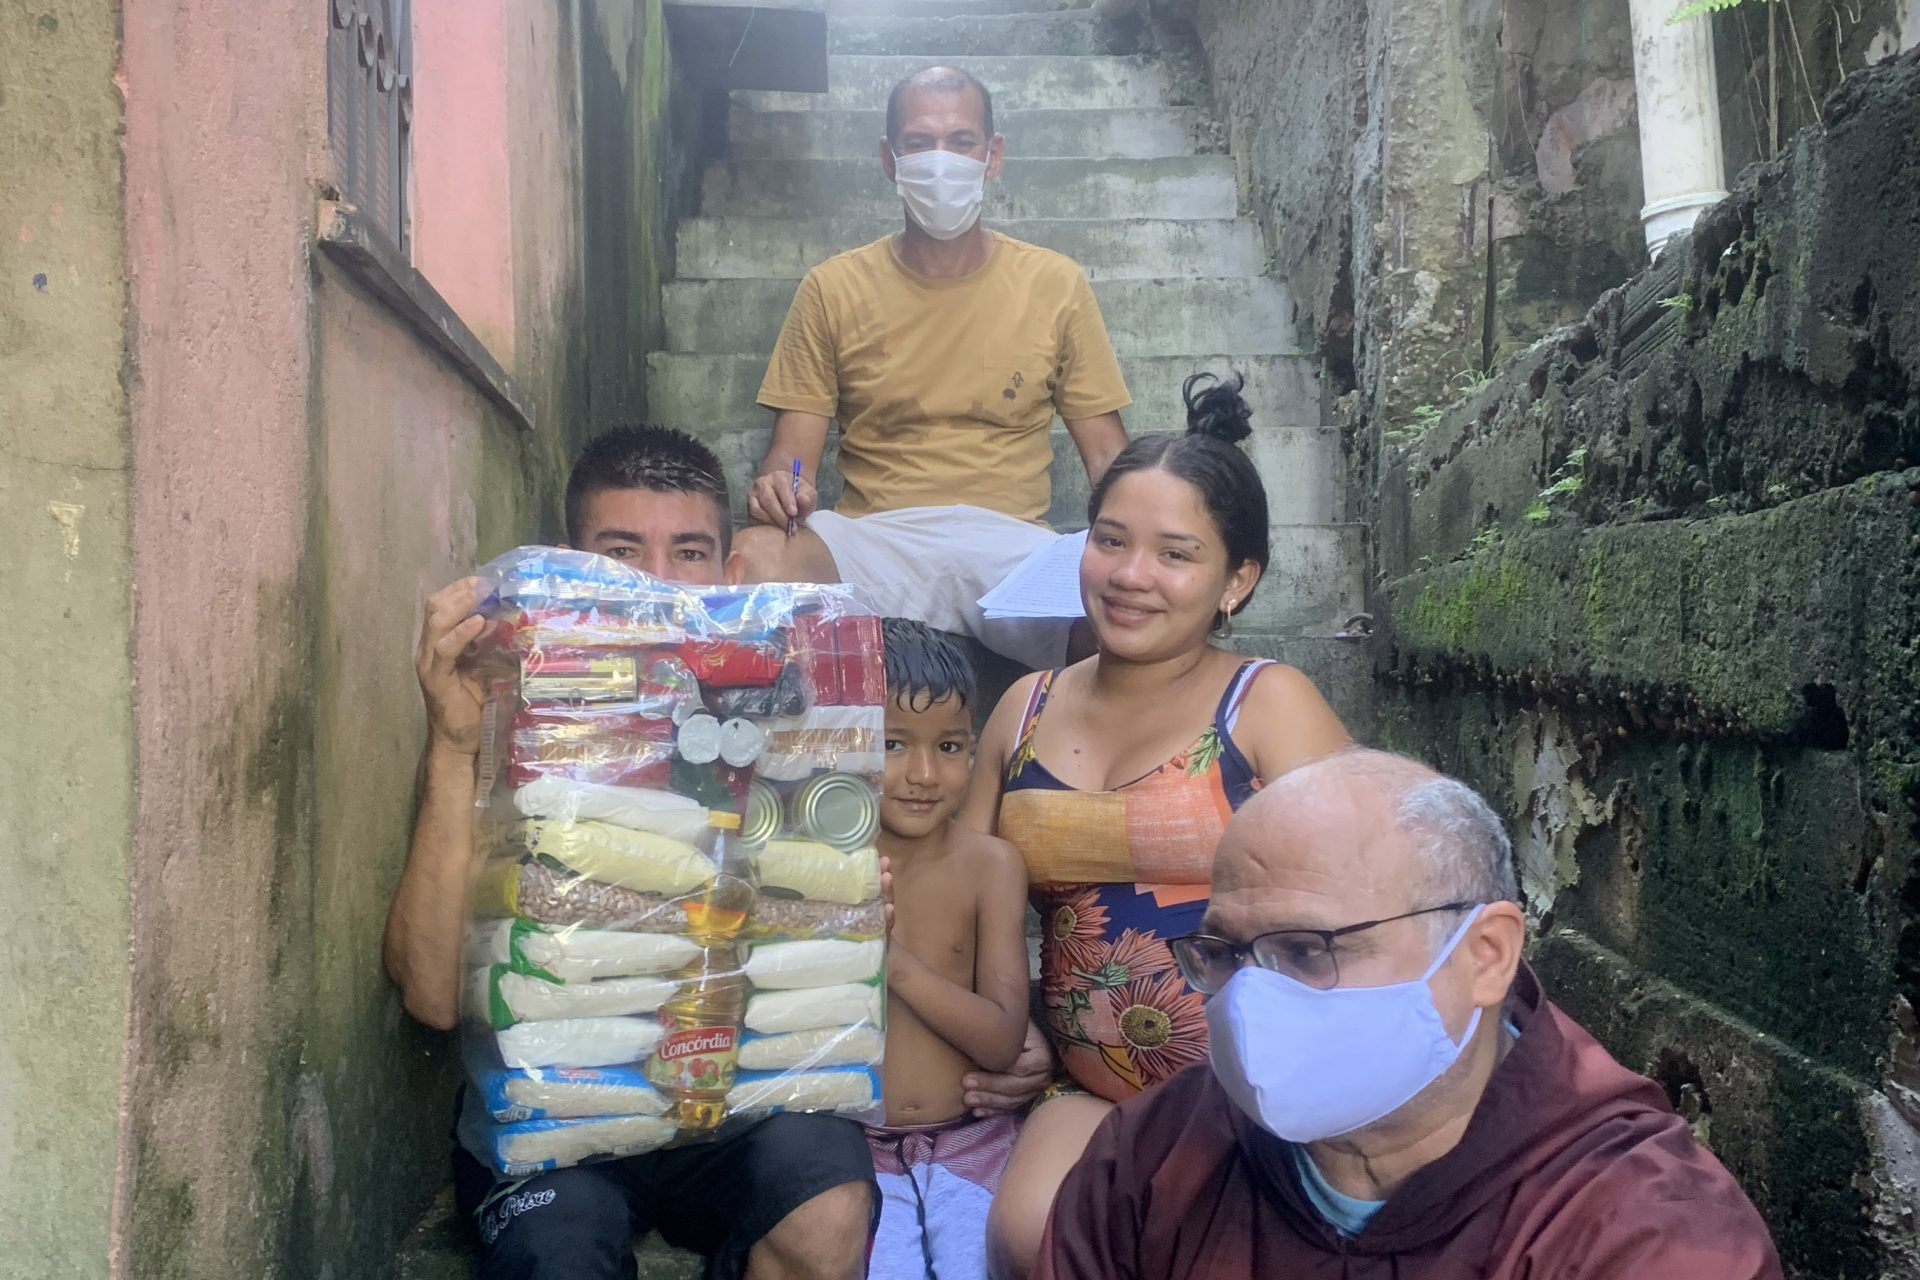 With image of Franciscan distributing food aid in Manaus, Brazil (© Aid to the Church in Need).